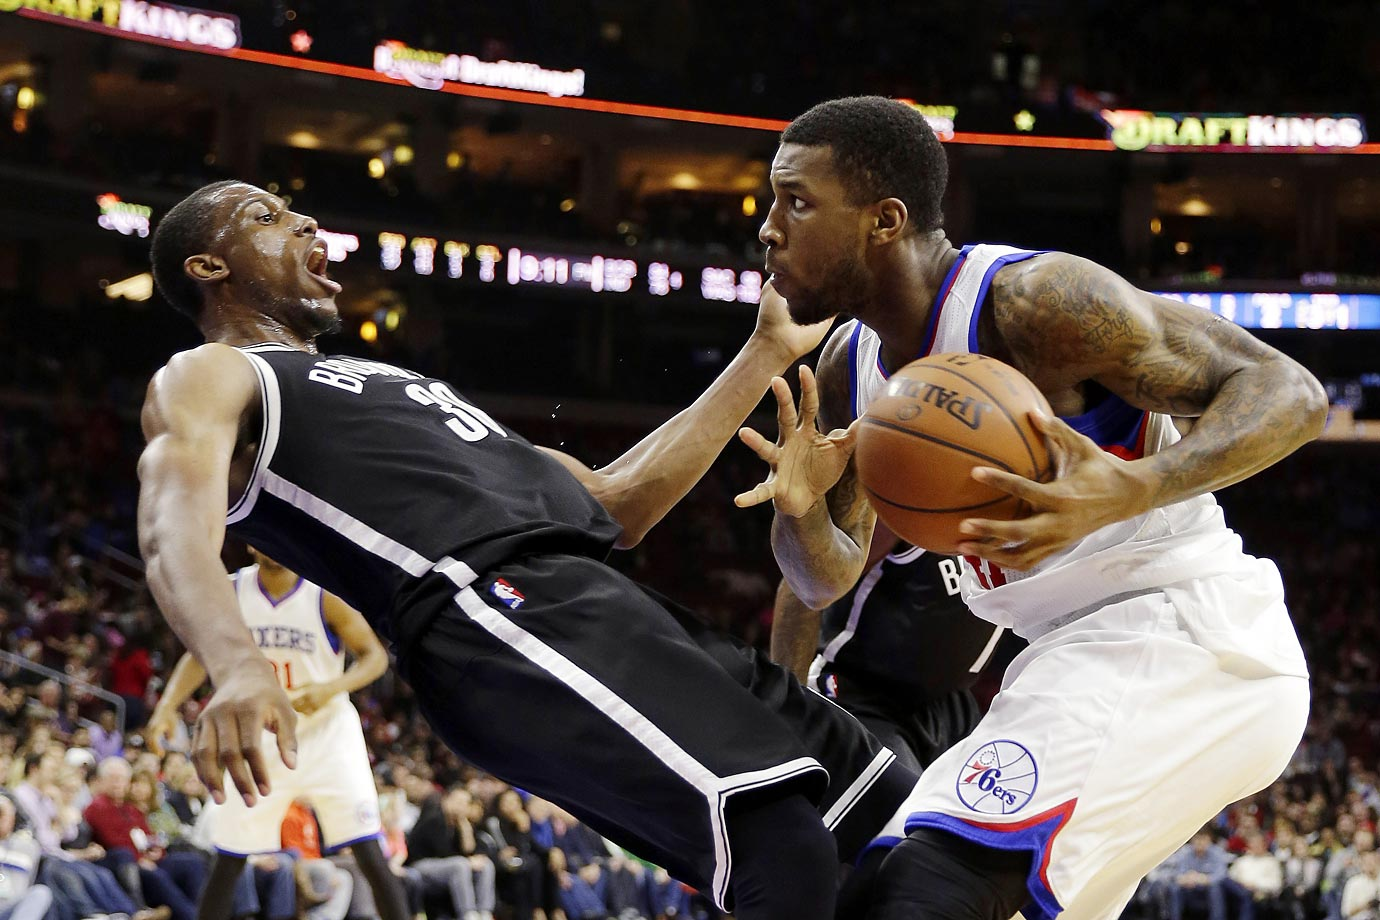 Thomas Robinson of the 76ers collides with Brooklyn Nets' Thaddeus Young. Brooklyn won 94-87.